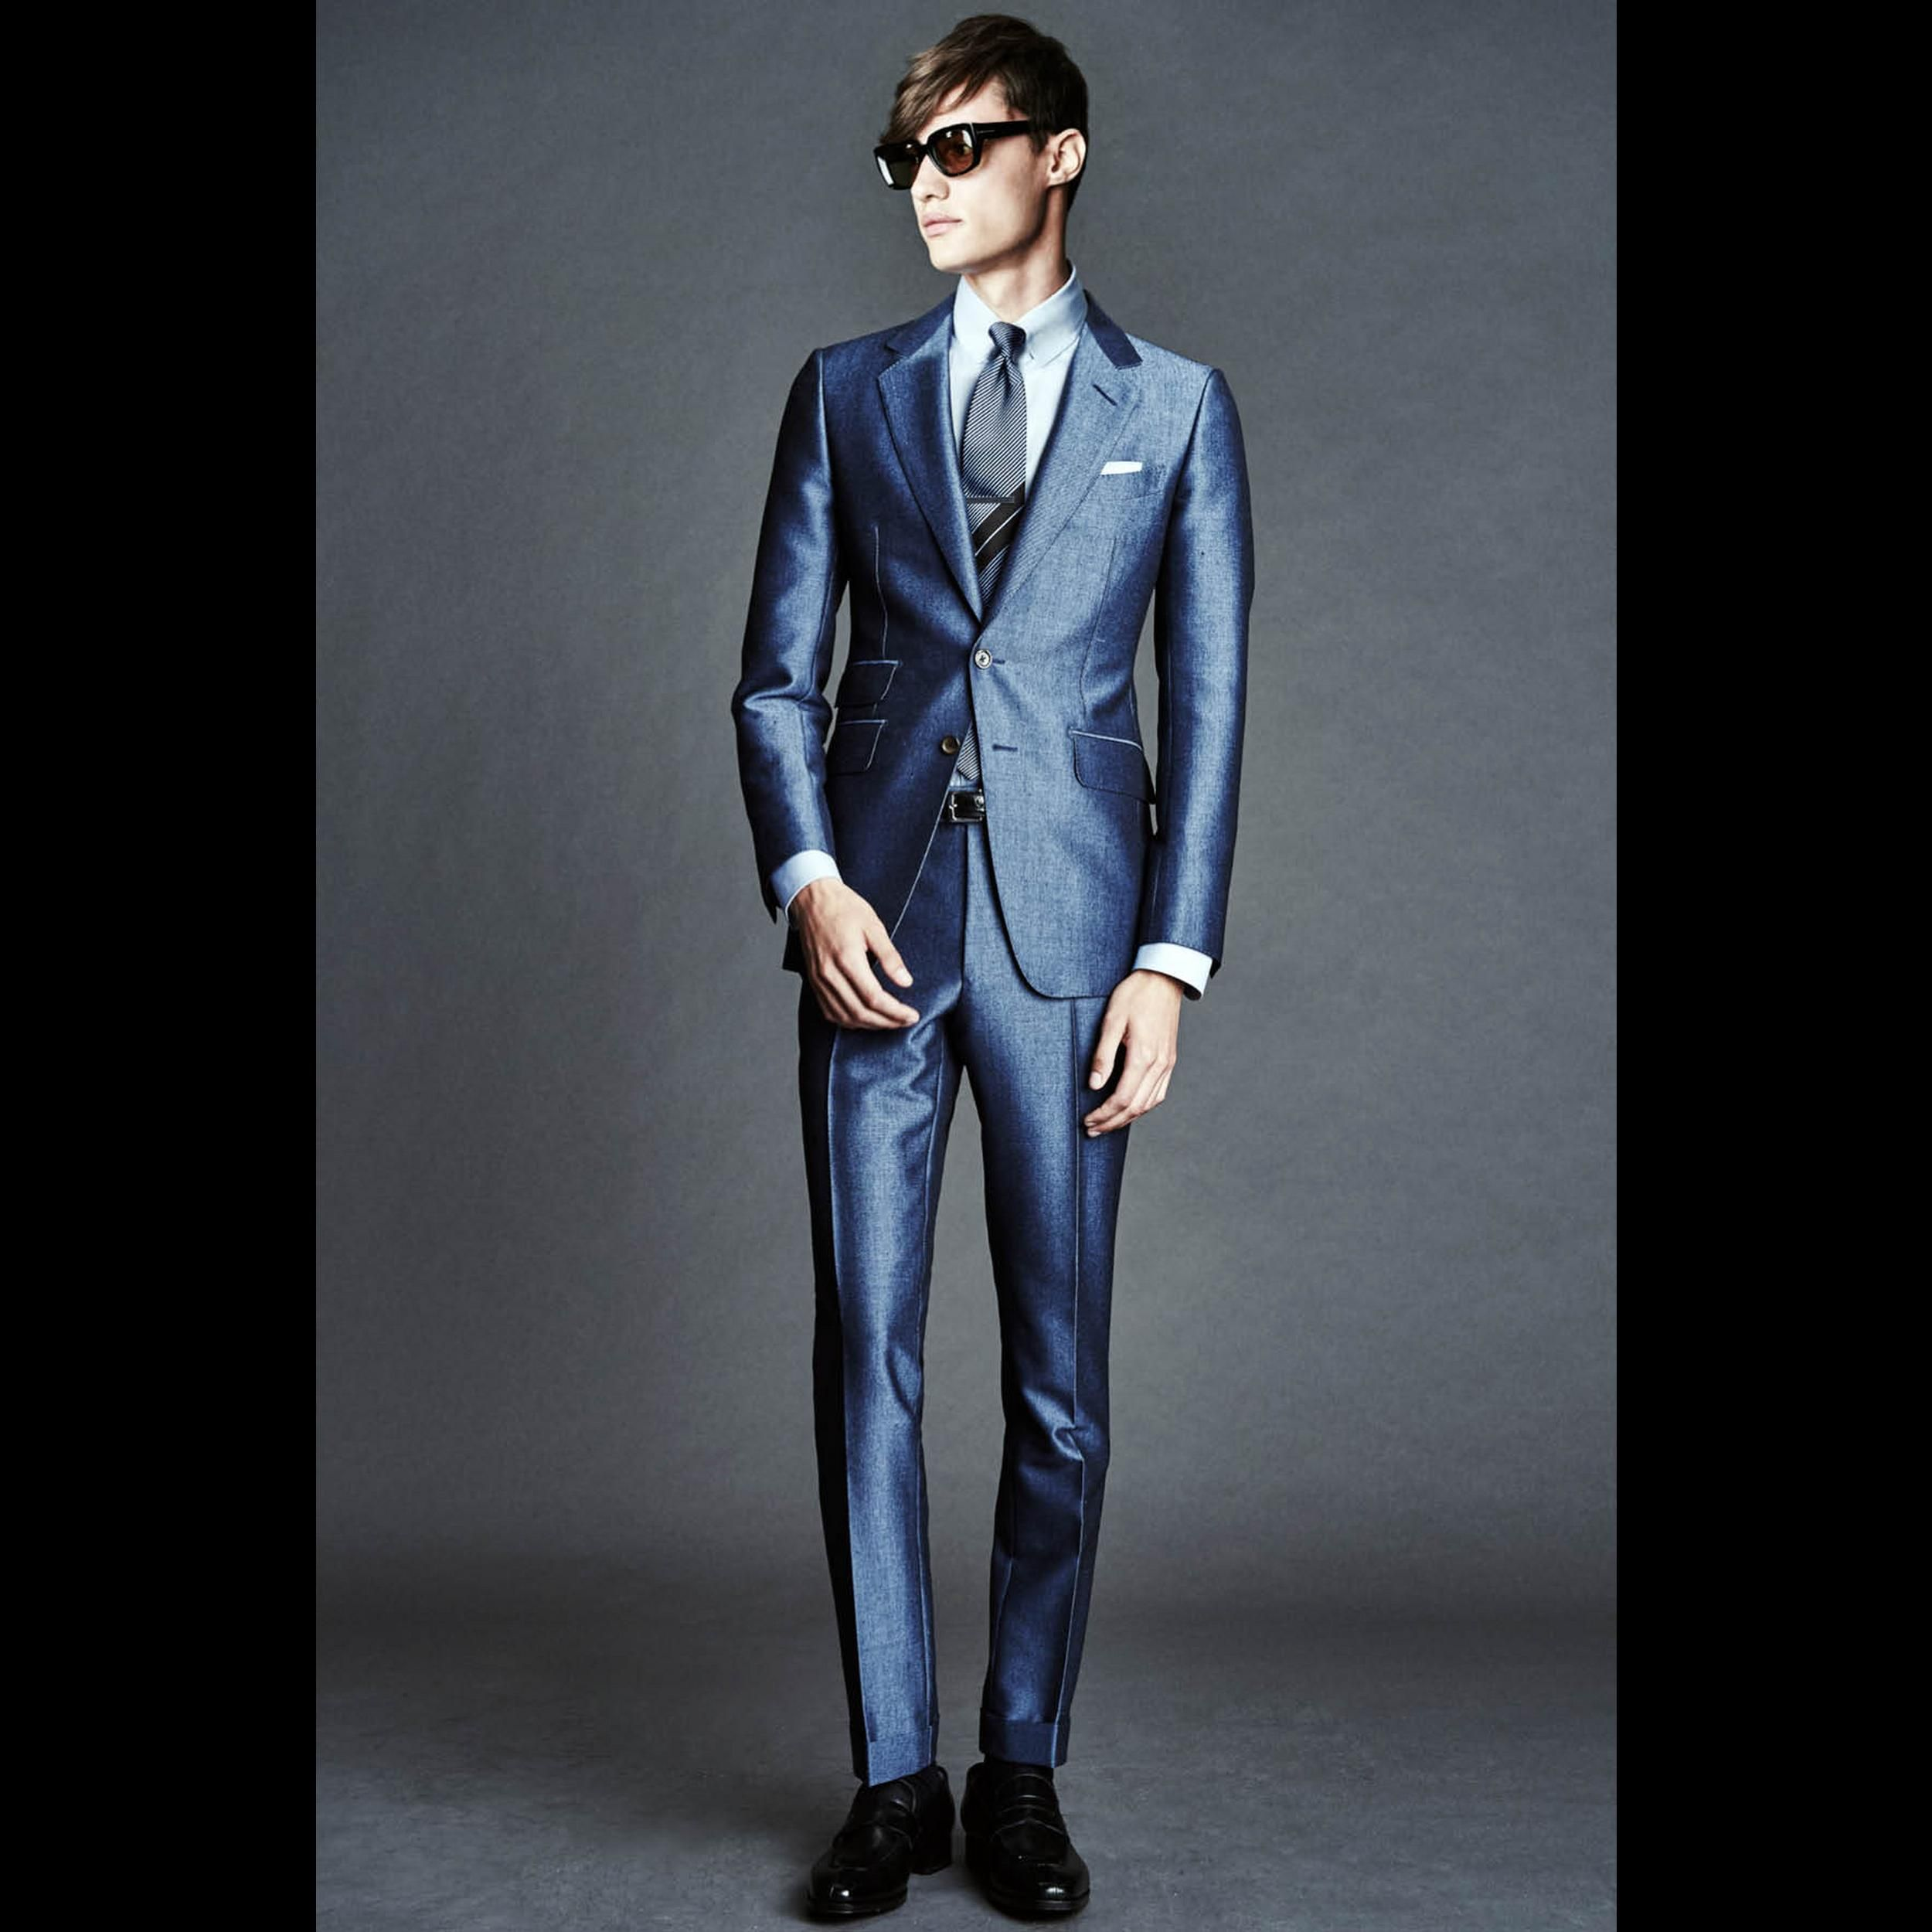 Tom Ford Summer Suit